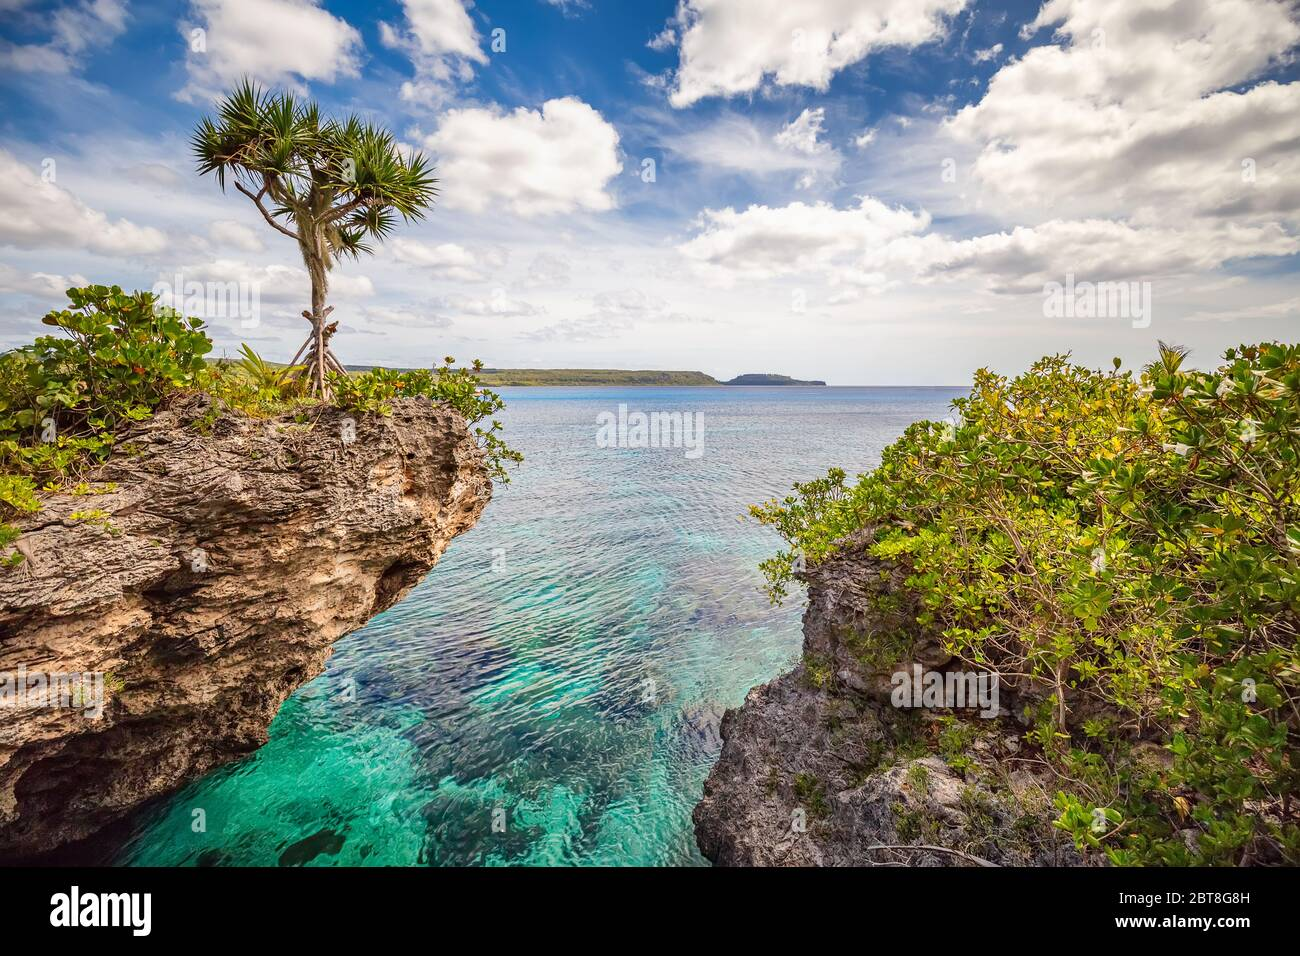 Scenic landscape with a single tree on top of a curved cliff with beautiful turquoise waters, blue sky and clouds on the Island of Mare, New Caledonia Stock Photo